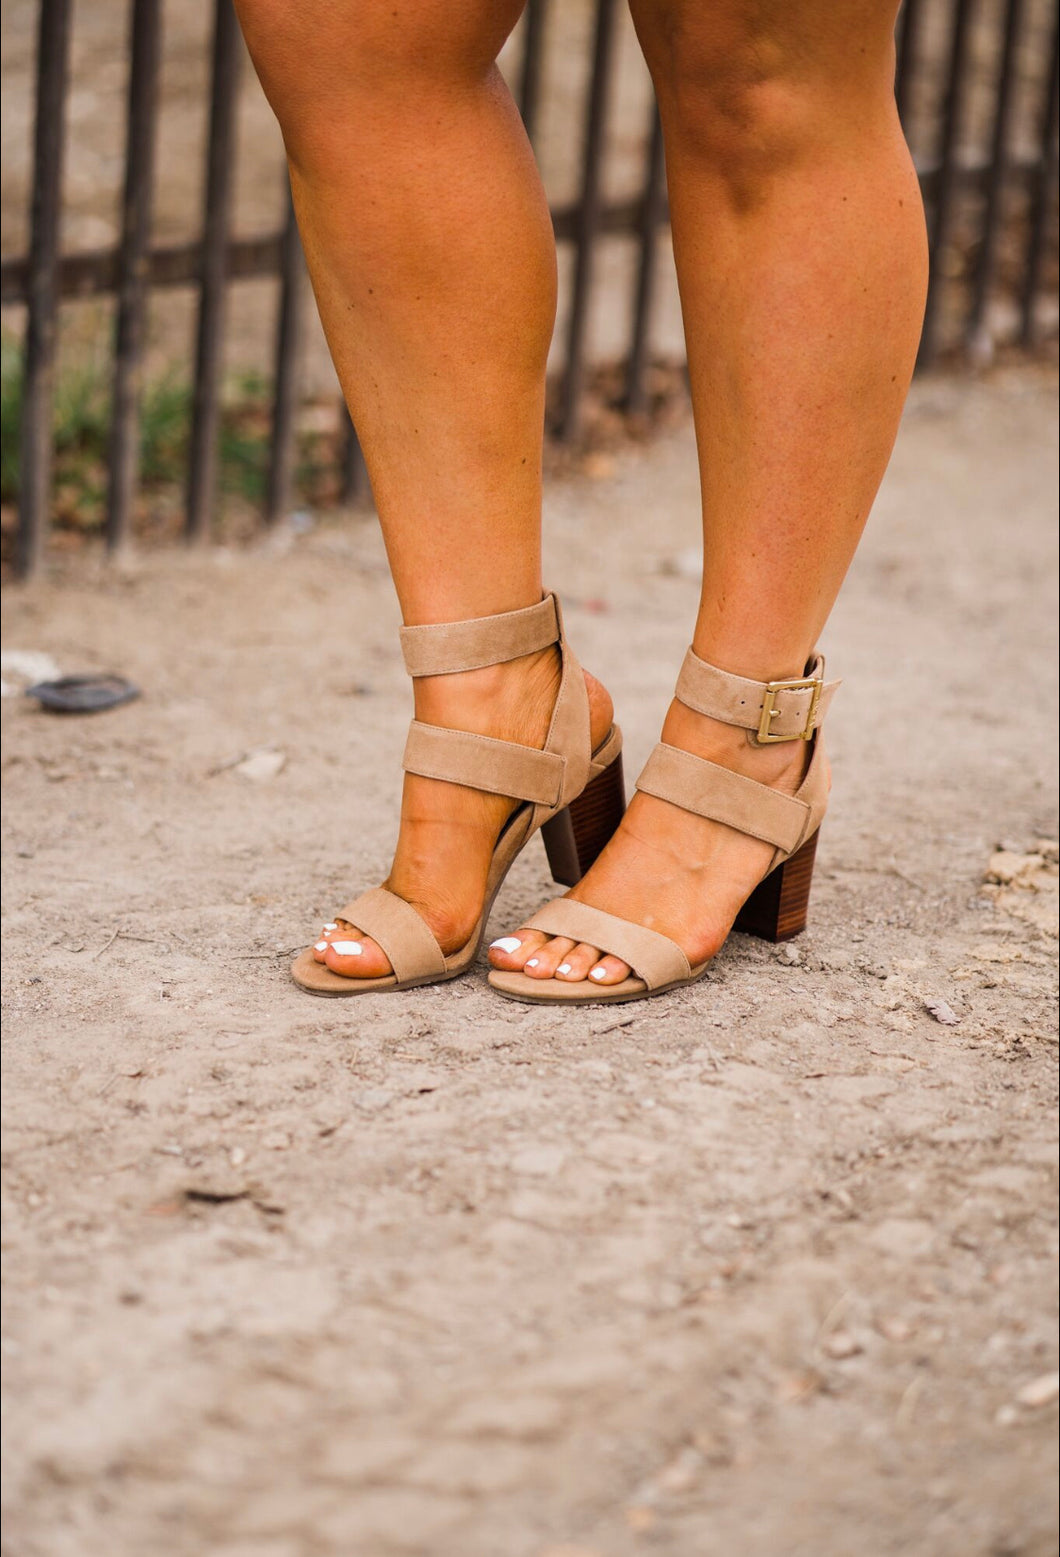 : The SOFIA HEELED Sandal :